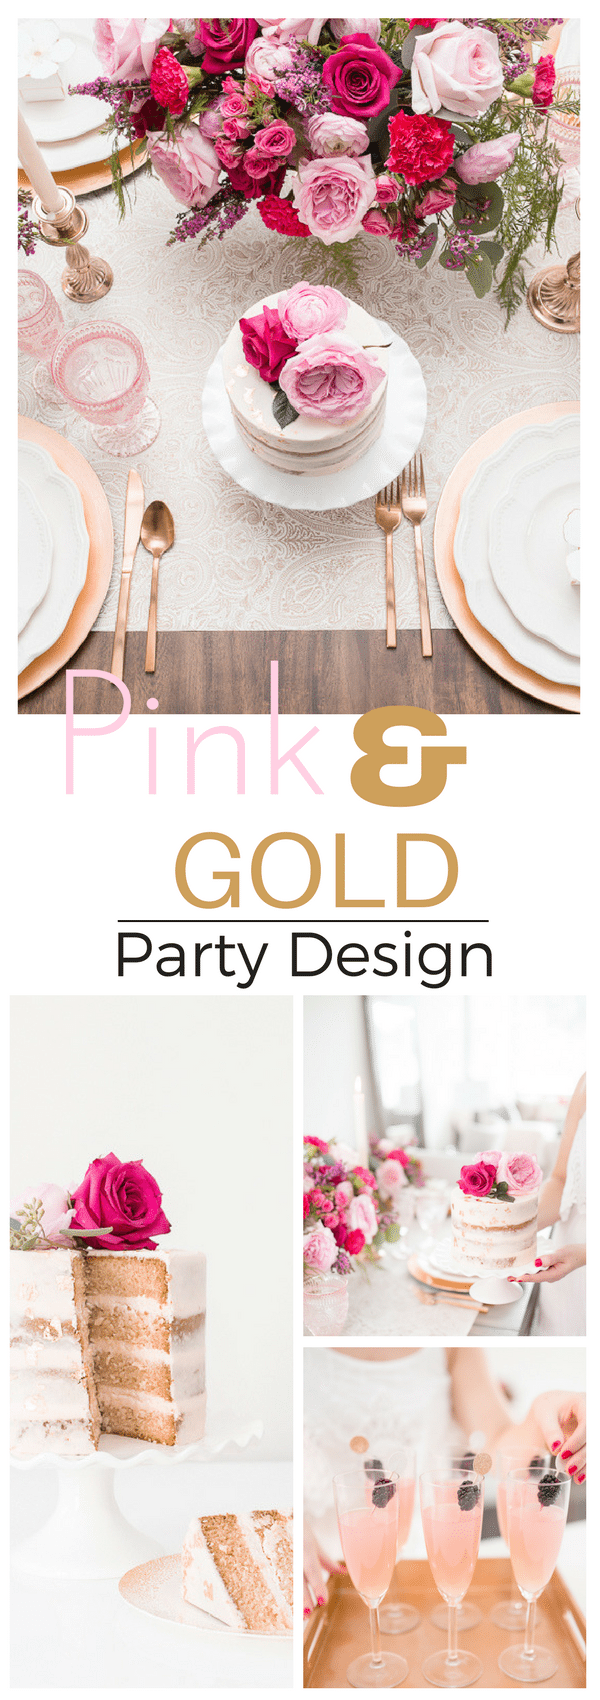 Pink and Gold Party Design